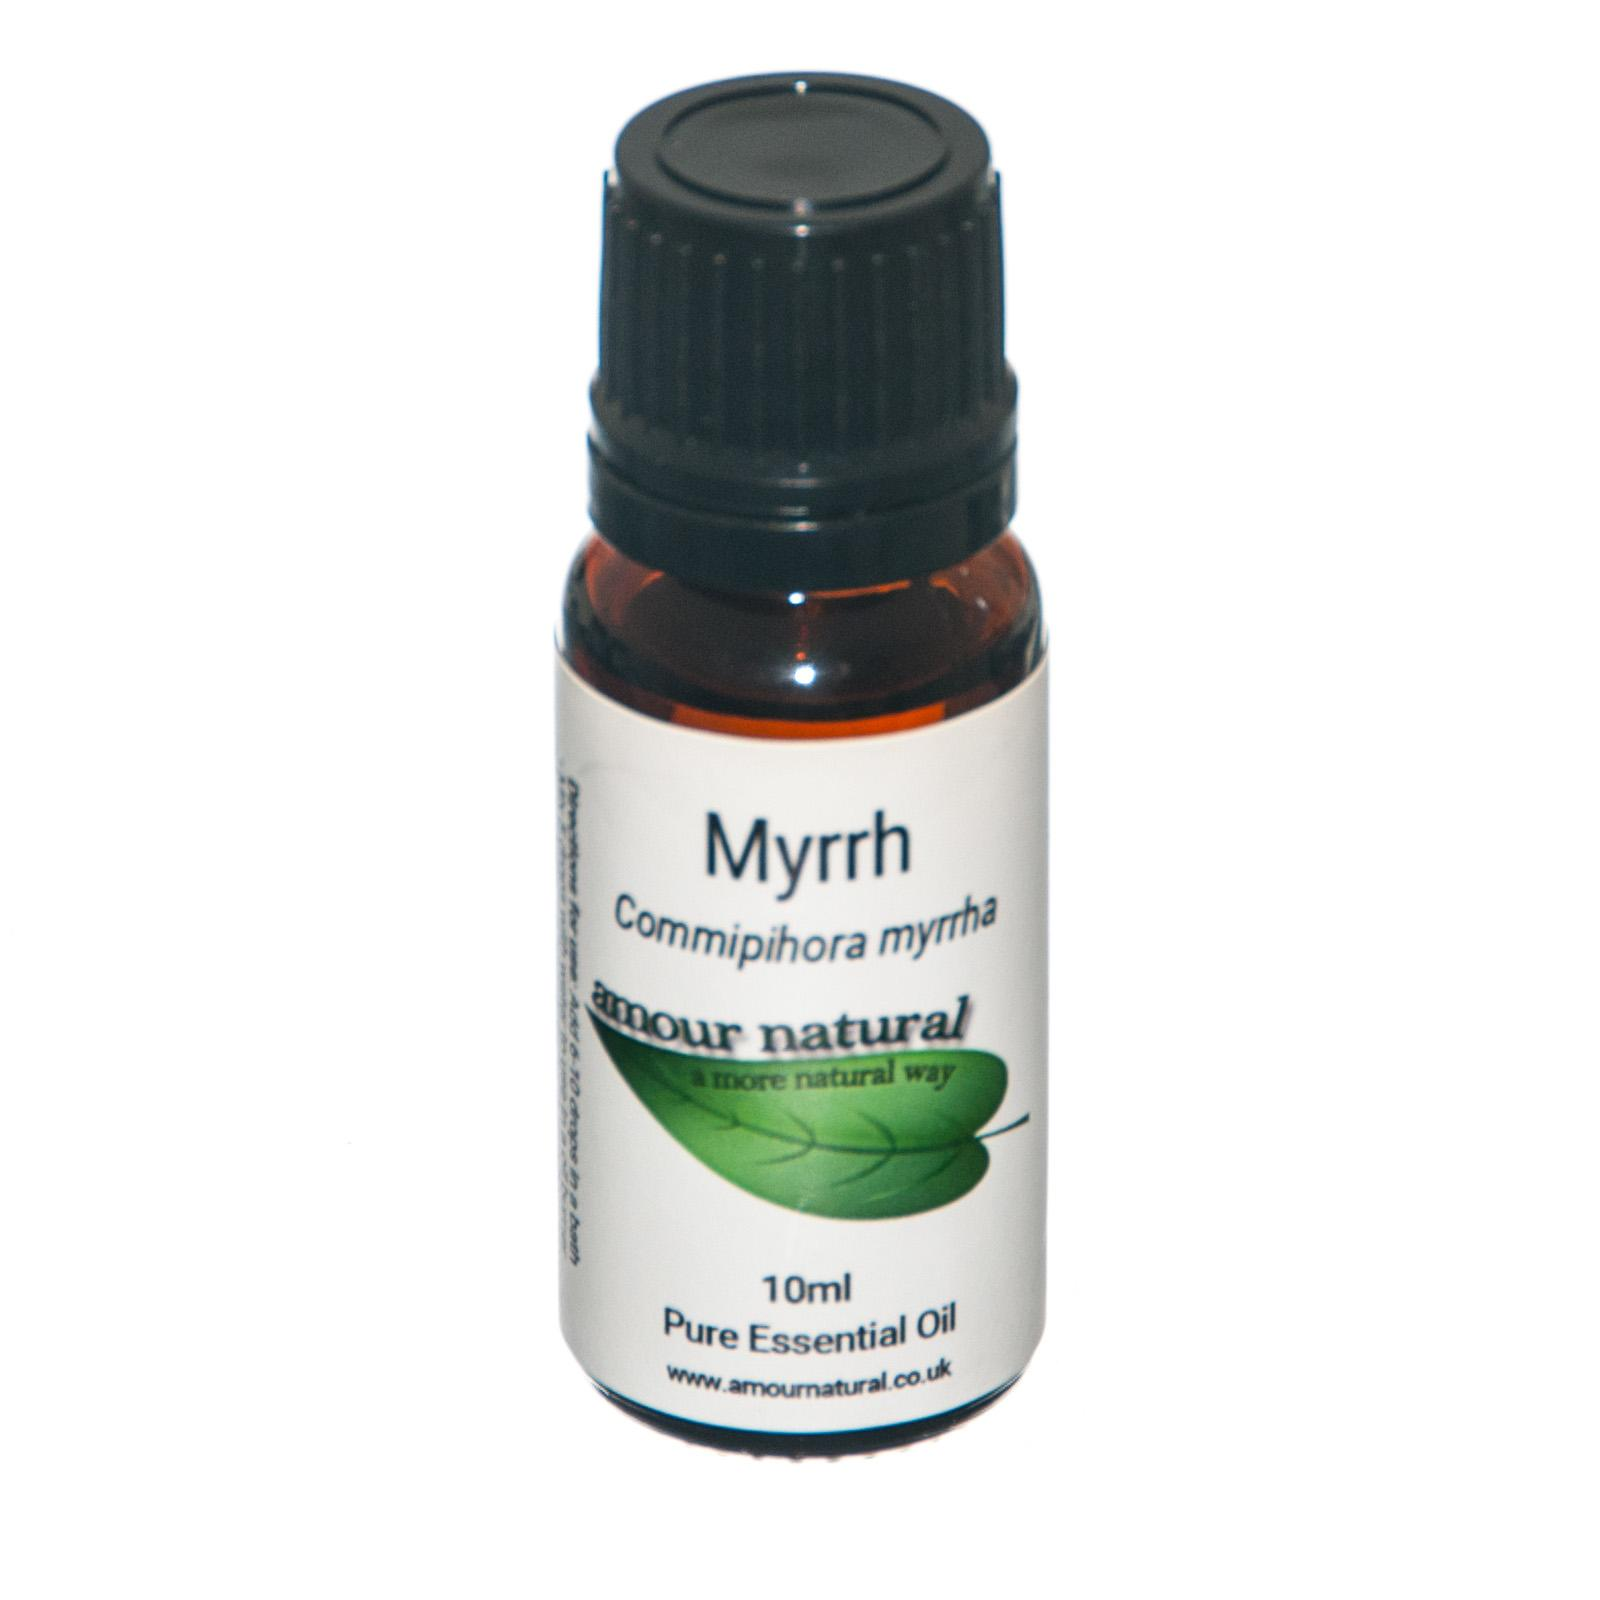 1 x 10 ml bottle of  Myrrh Essential Oil